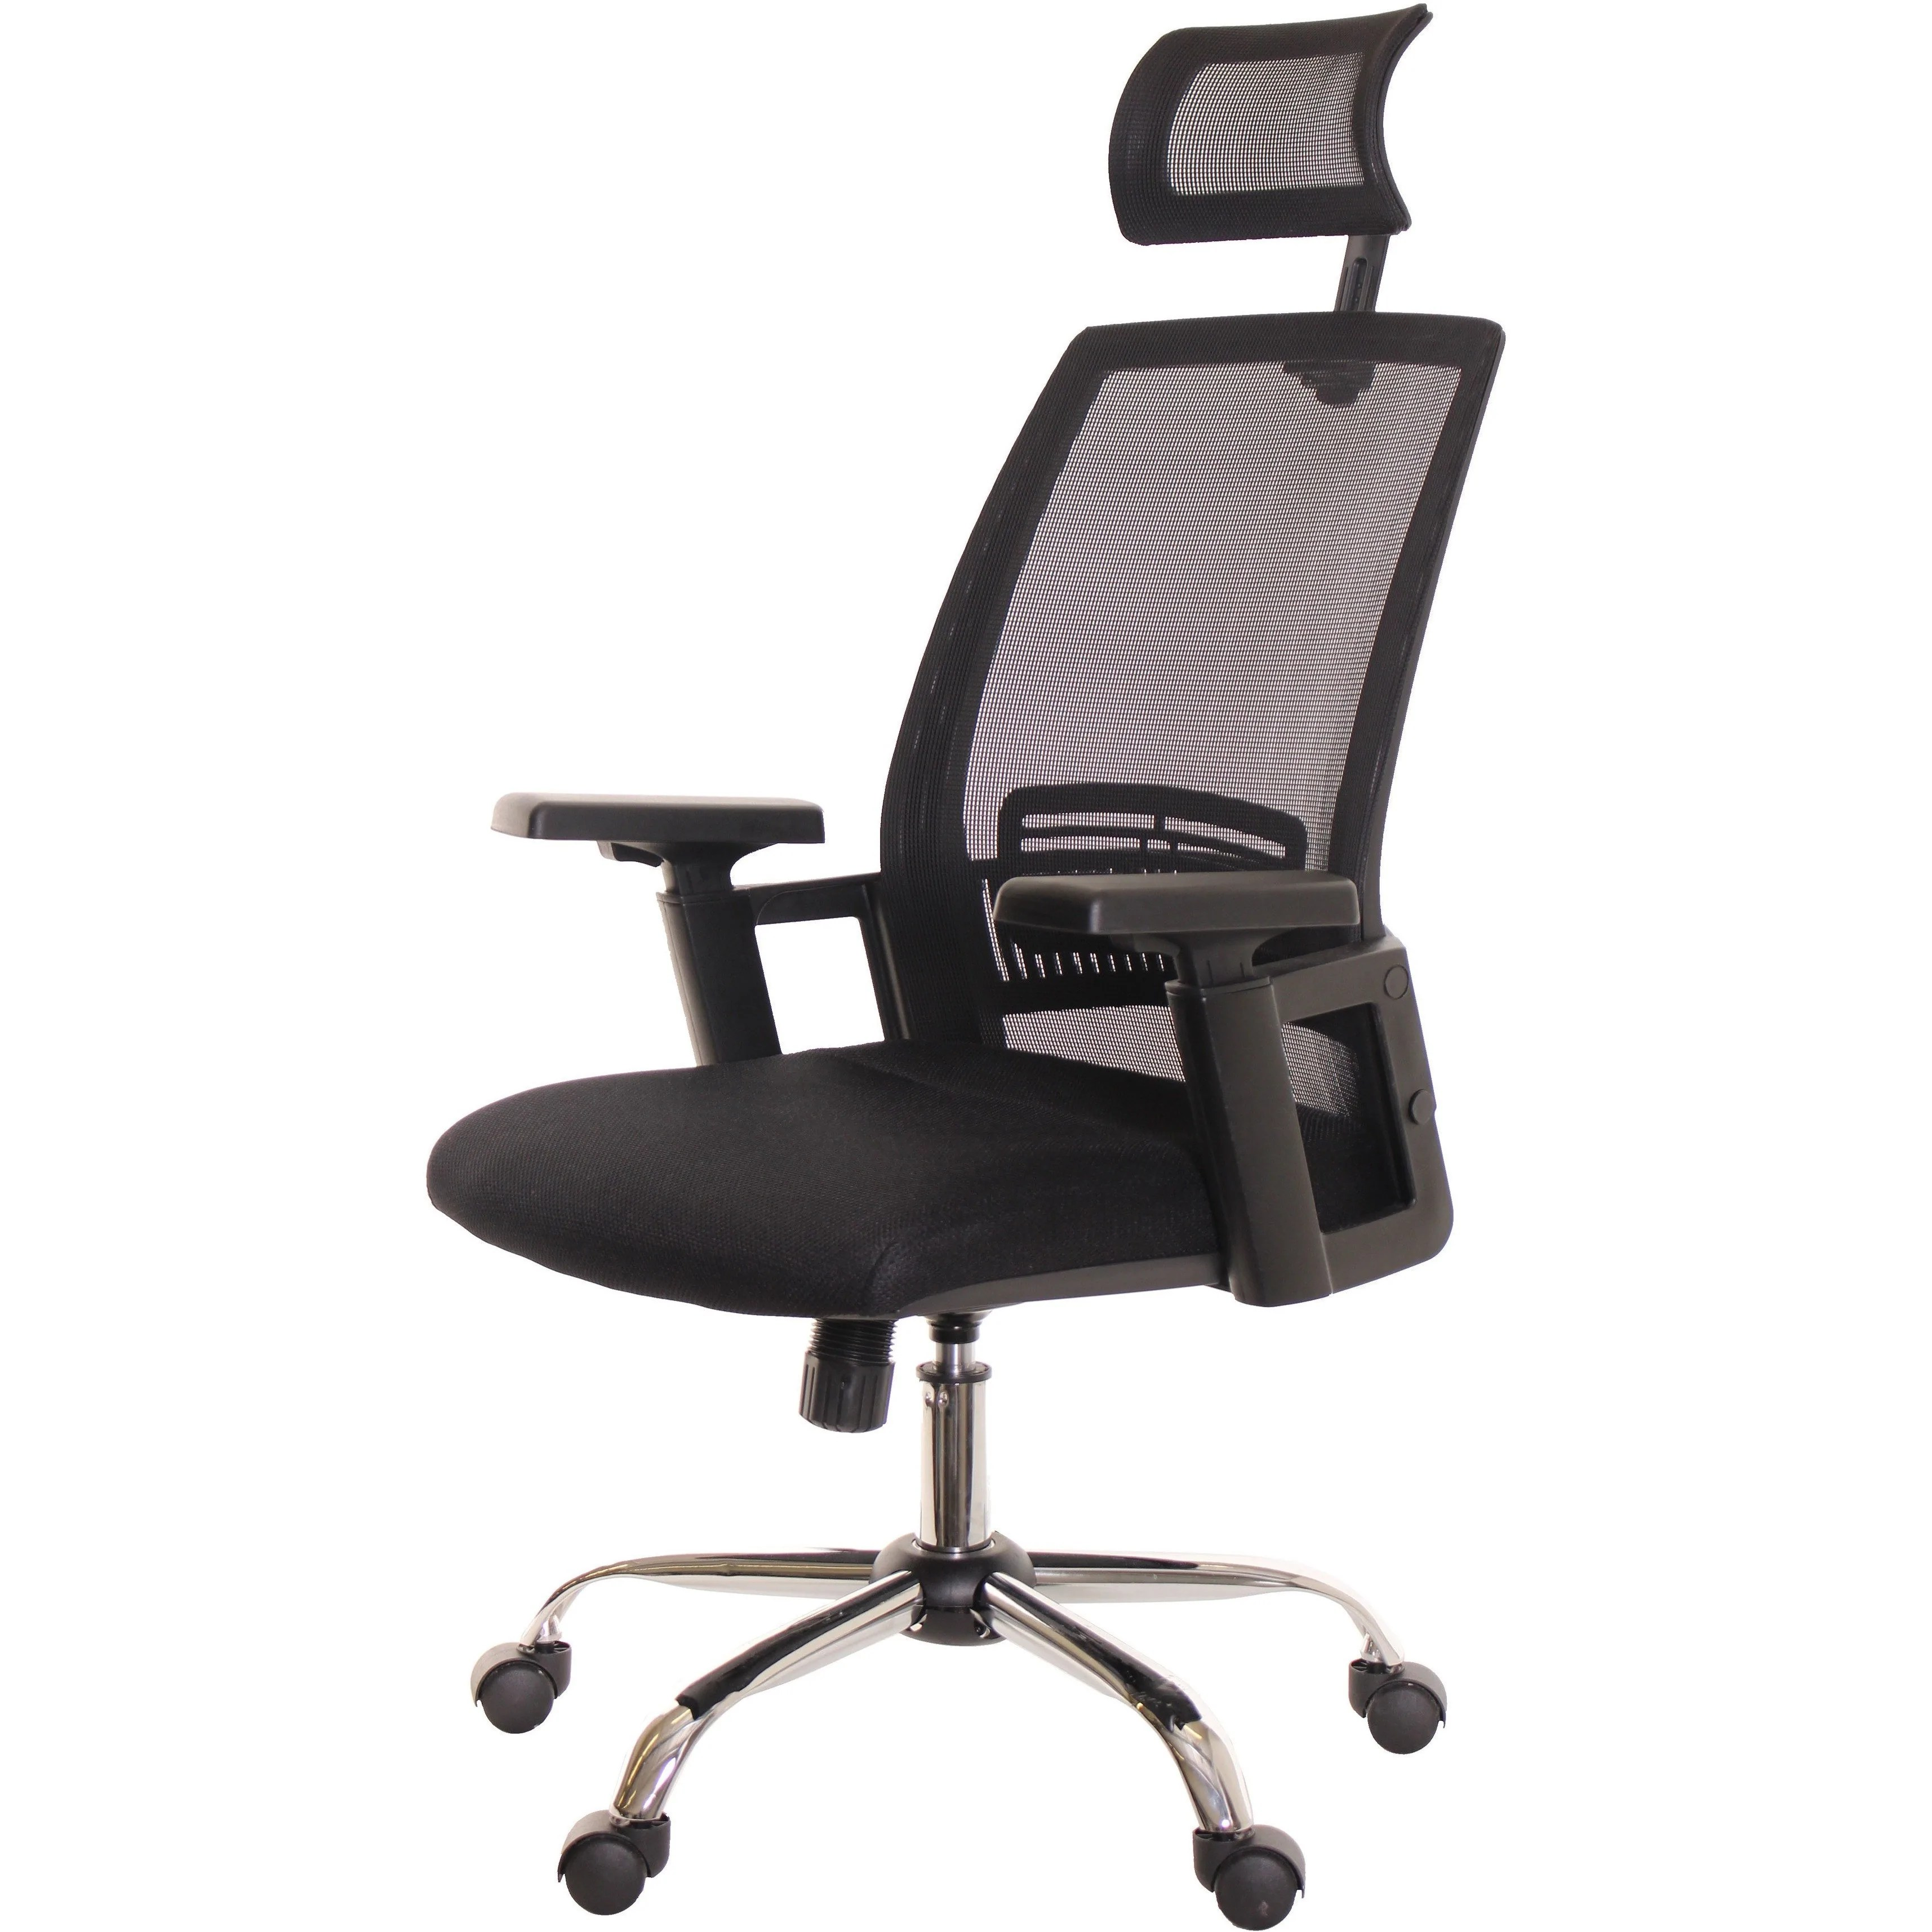 workpro commercial mesh back executive chair black leather swivel recliner chairs ergonomic office with headrest intey